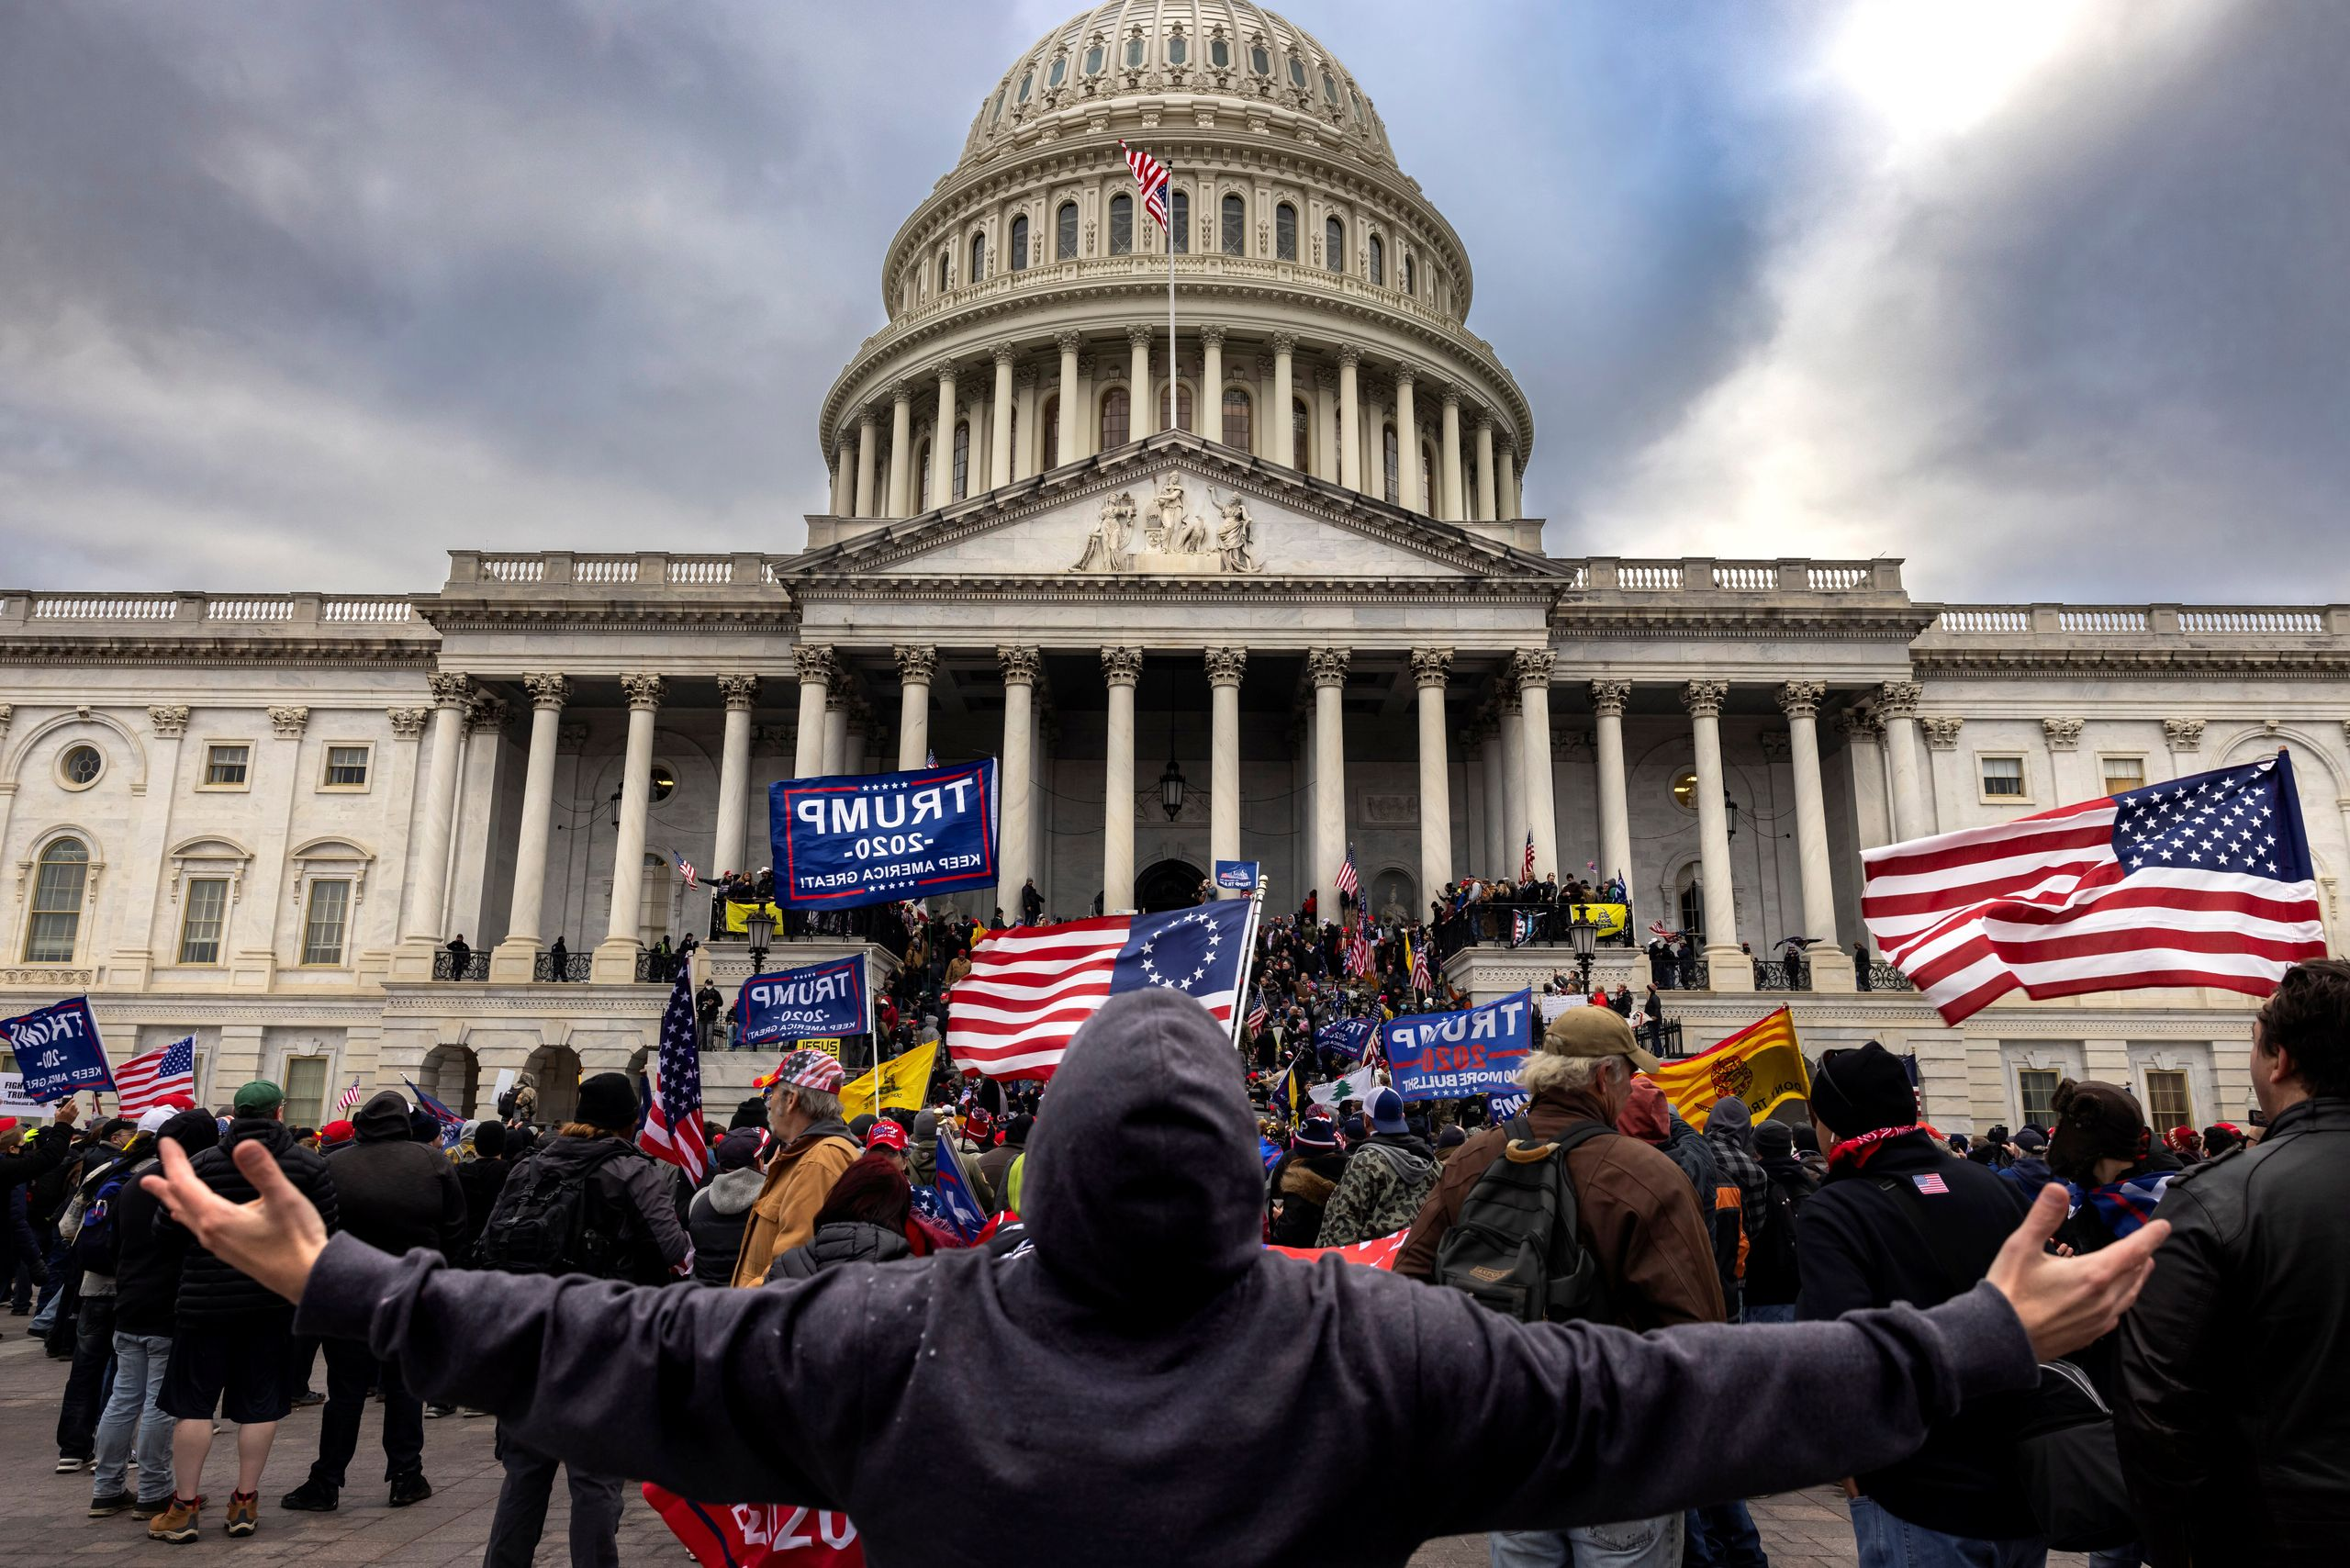 The Jan. 6 riot at the U.S. Capitol was a visible attack on American elections. But the ensuing Republican attempts to instit